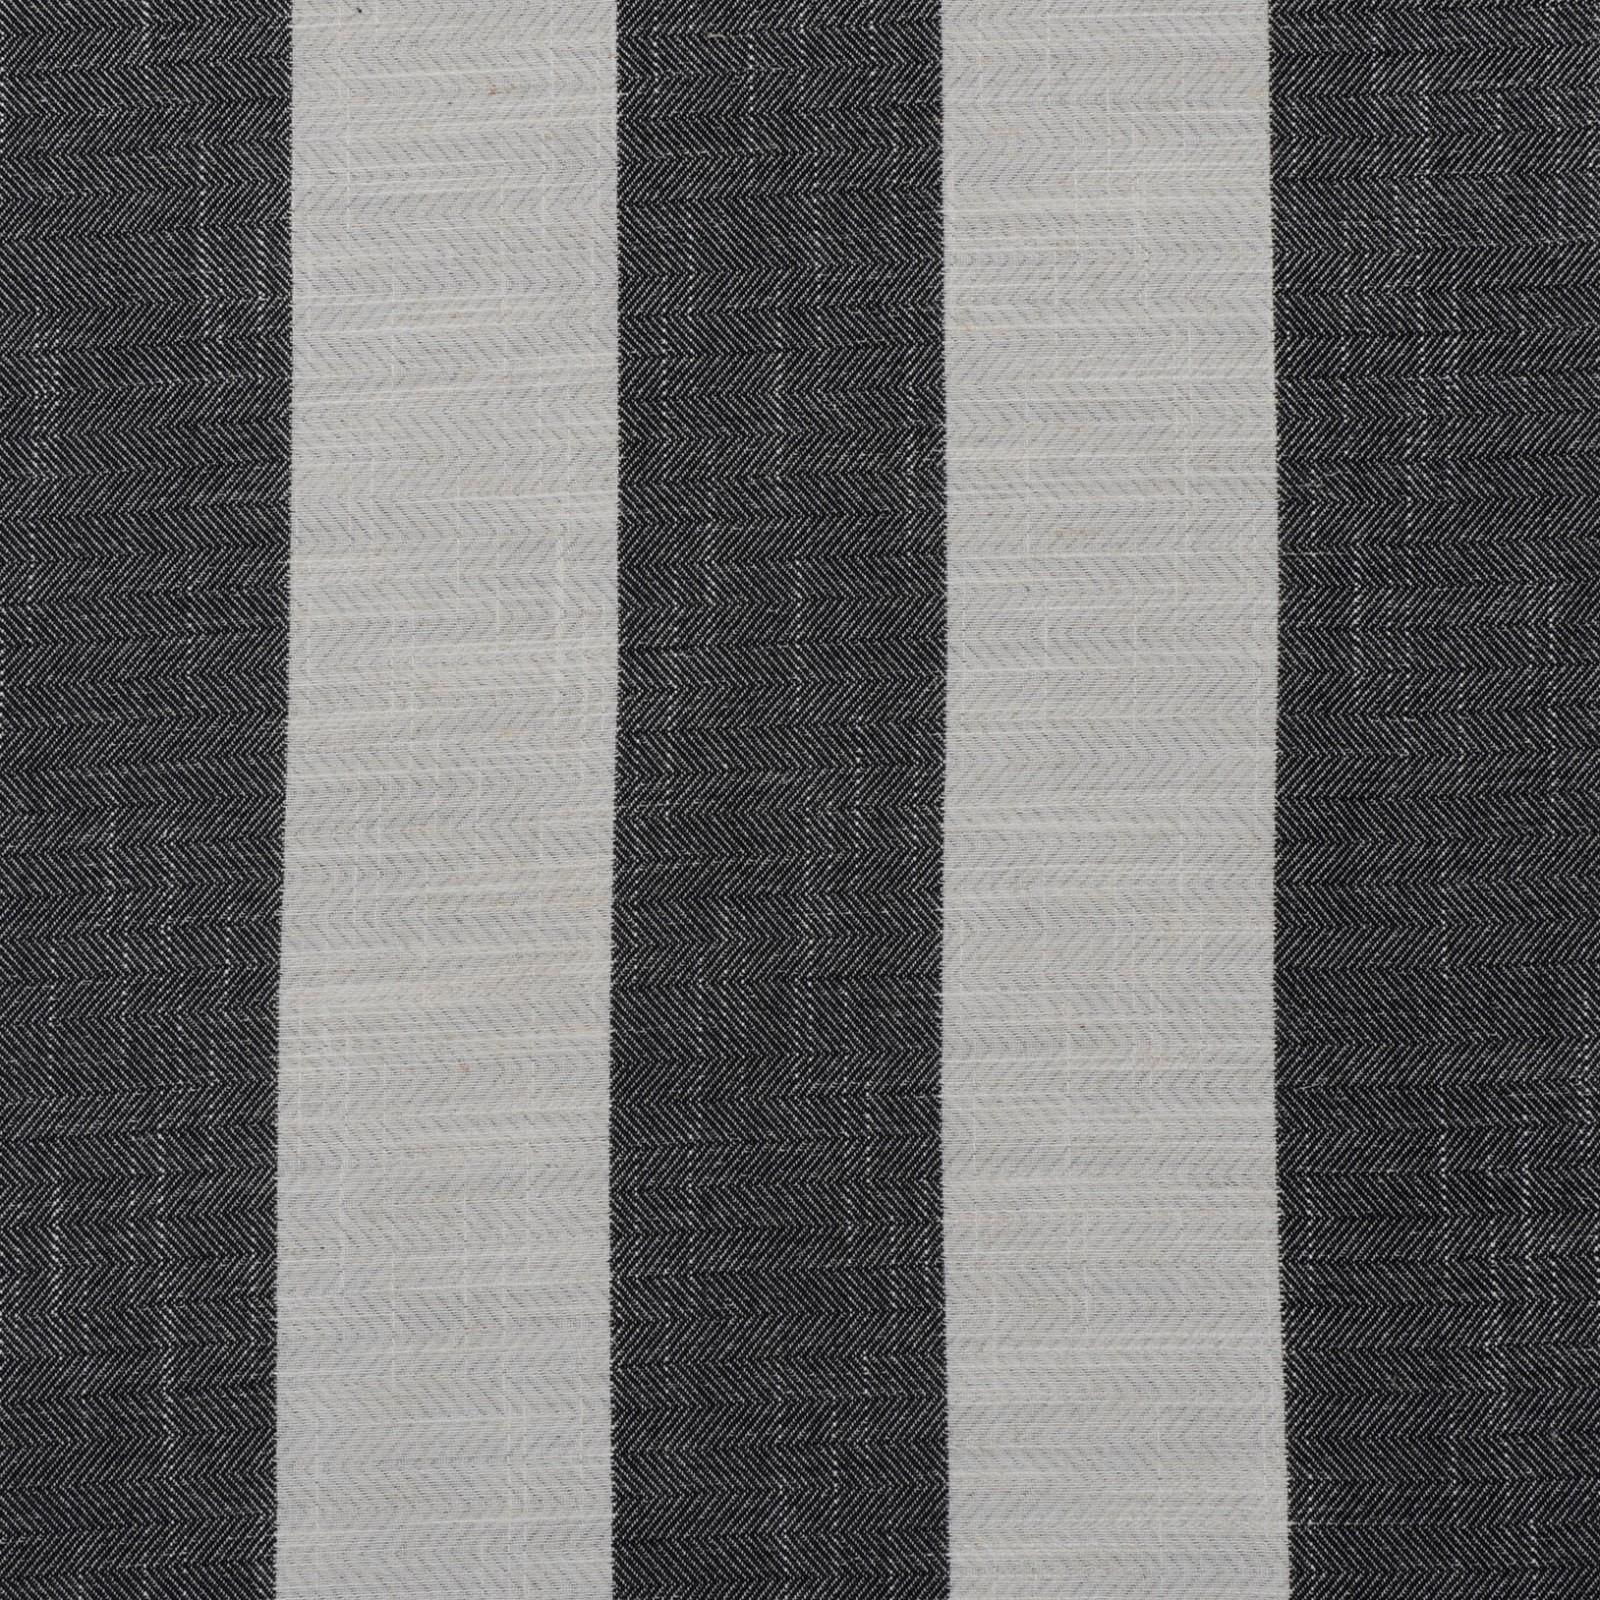 Suede Upholstery Fabric >> Black Black and Gray Stripe Linen Upholstery Fabric